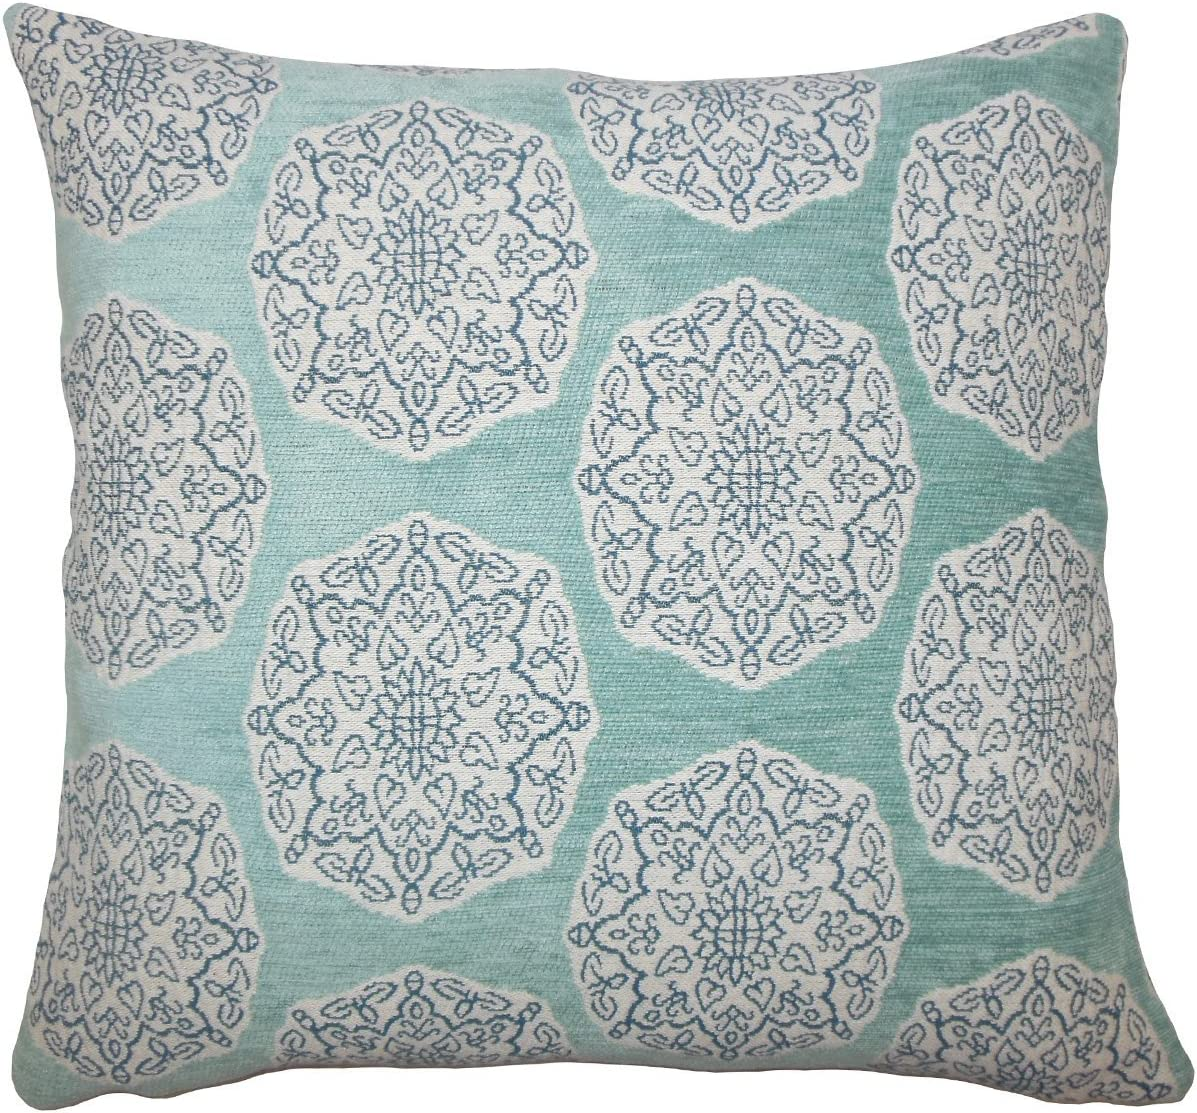 The Pillow Collection Quitzal Geometric Bedding Sham Turquoise Standard//20 x 26,